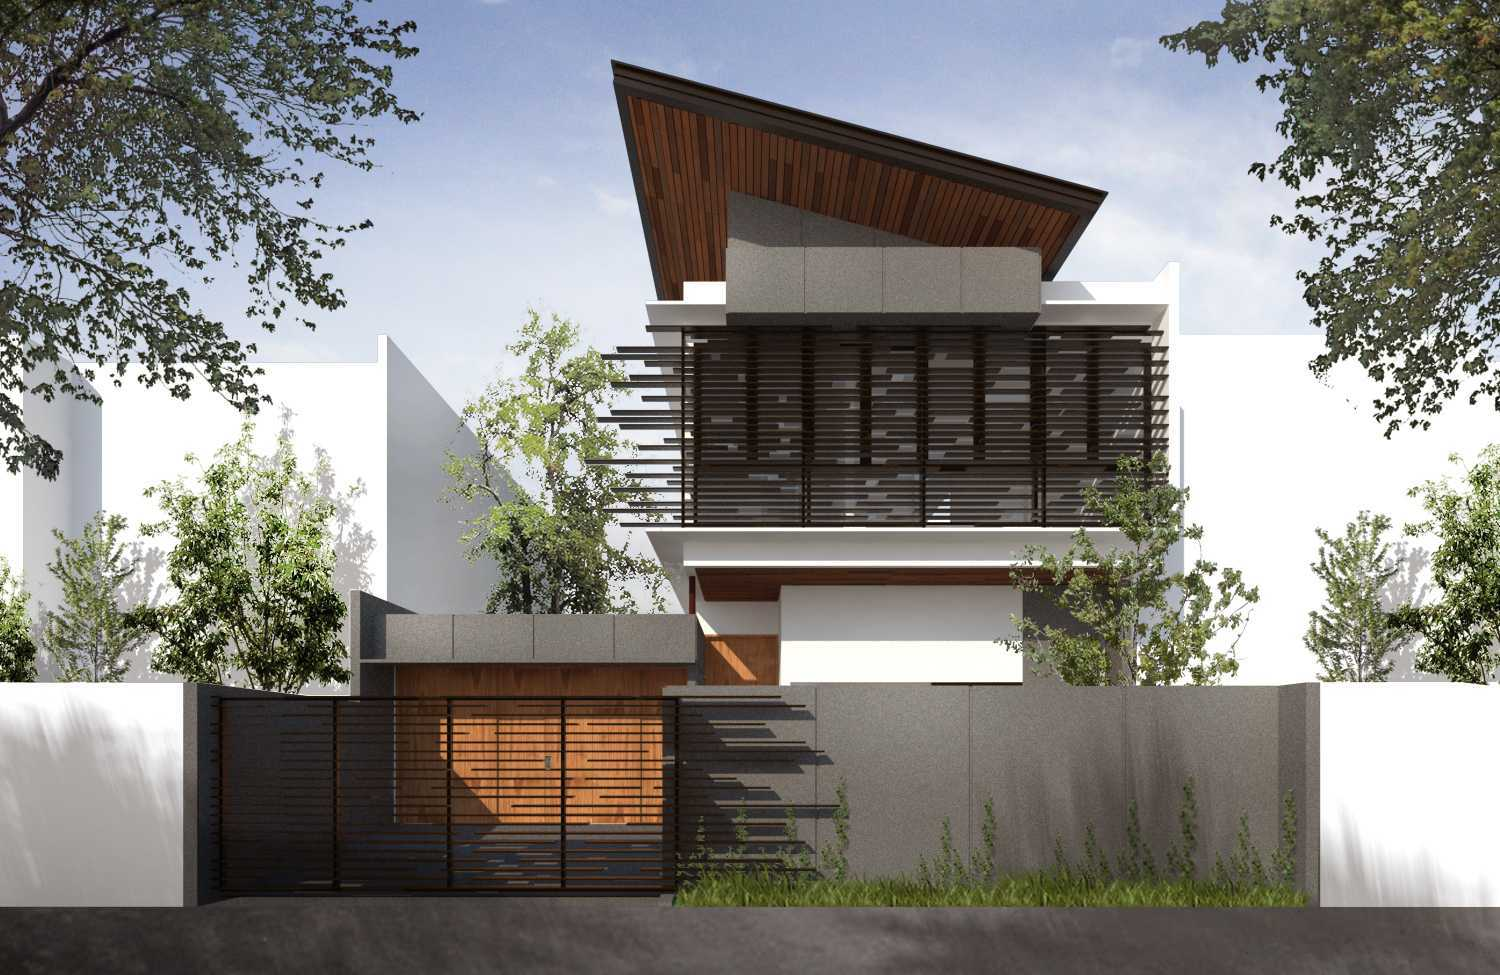 Jasa Design and Build MahaStudio & Partner di Tangerang